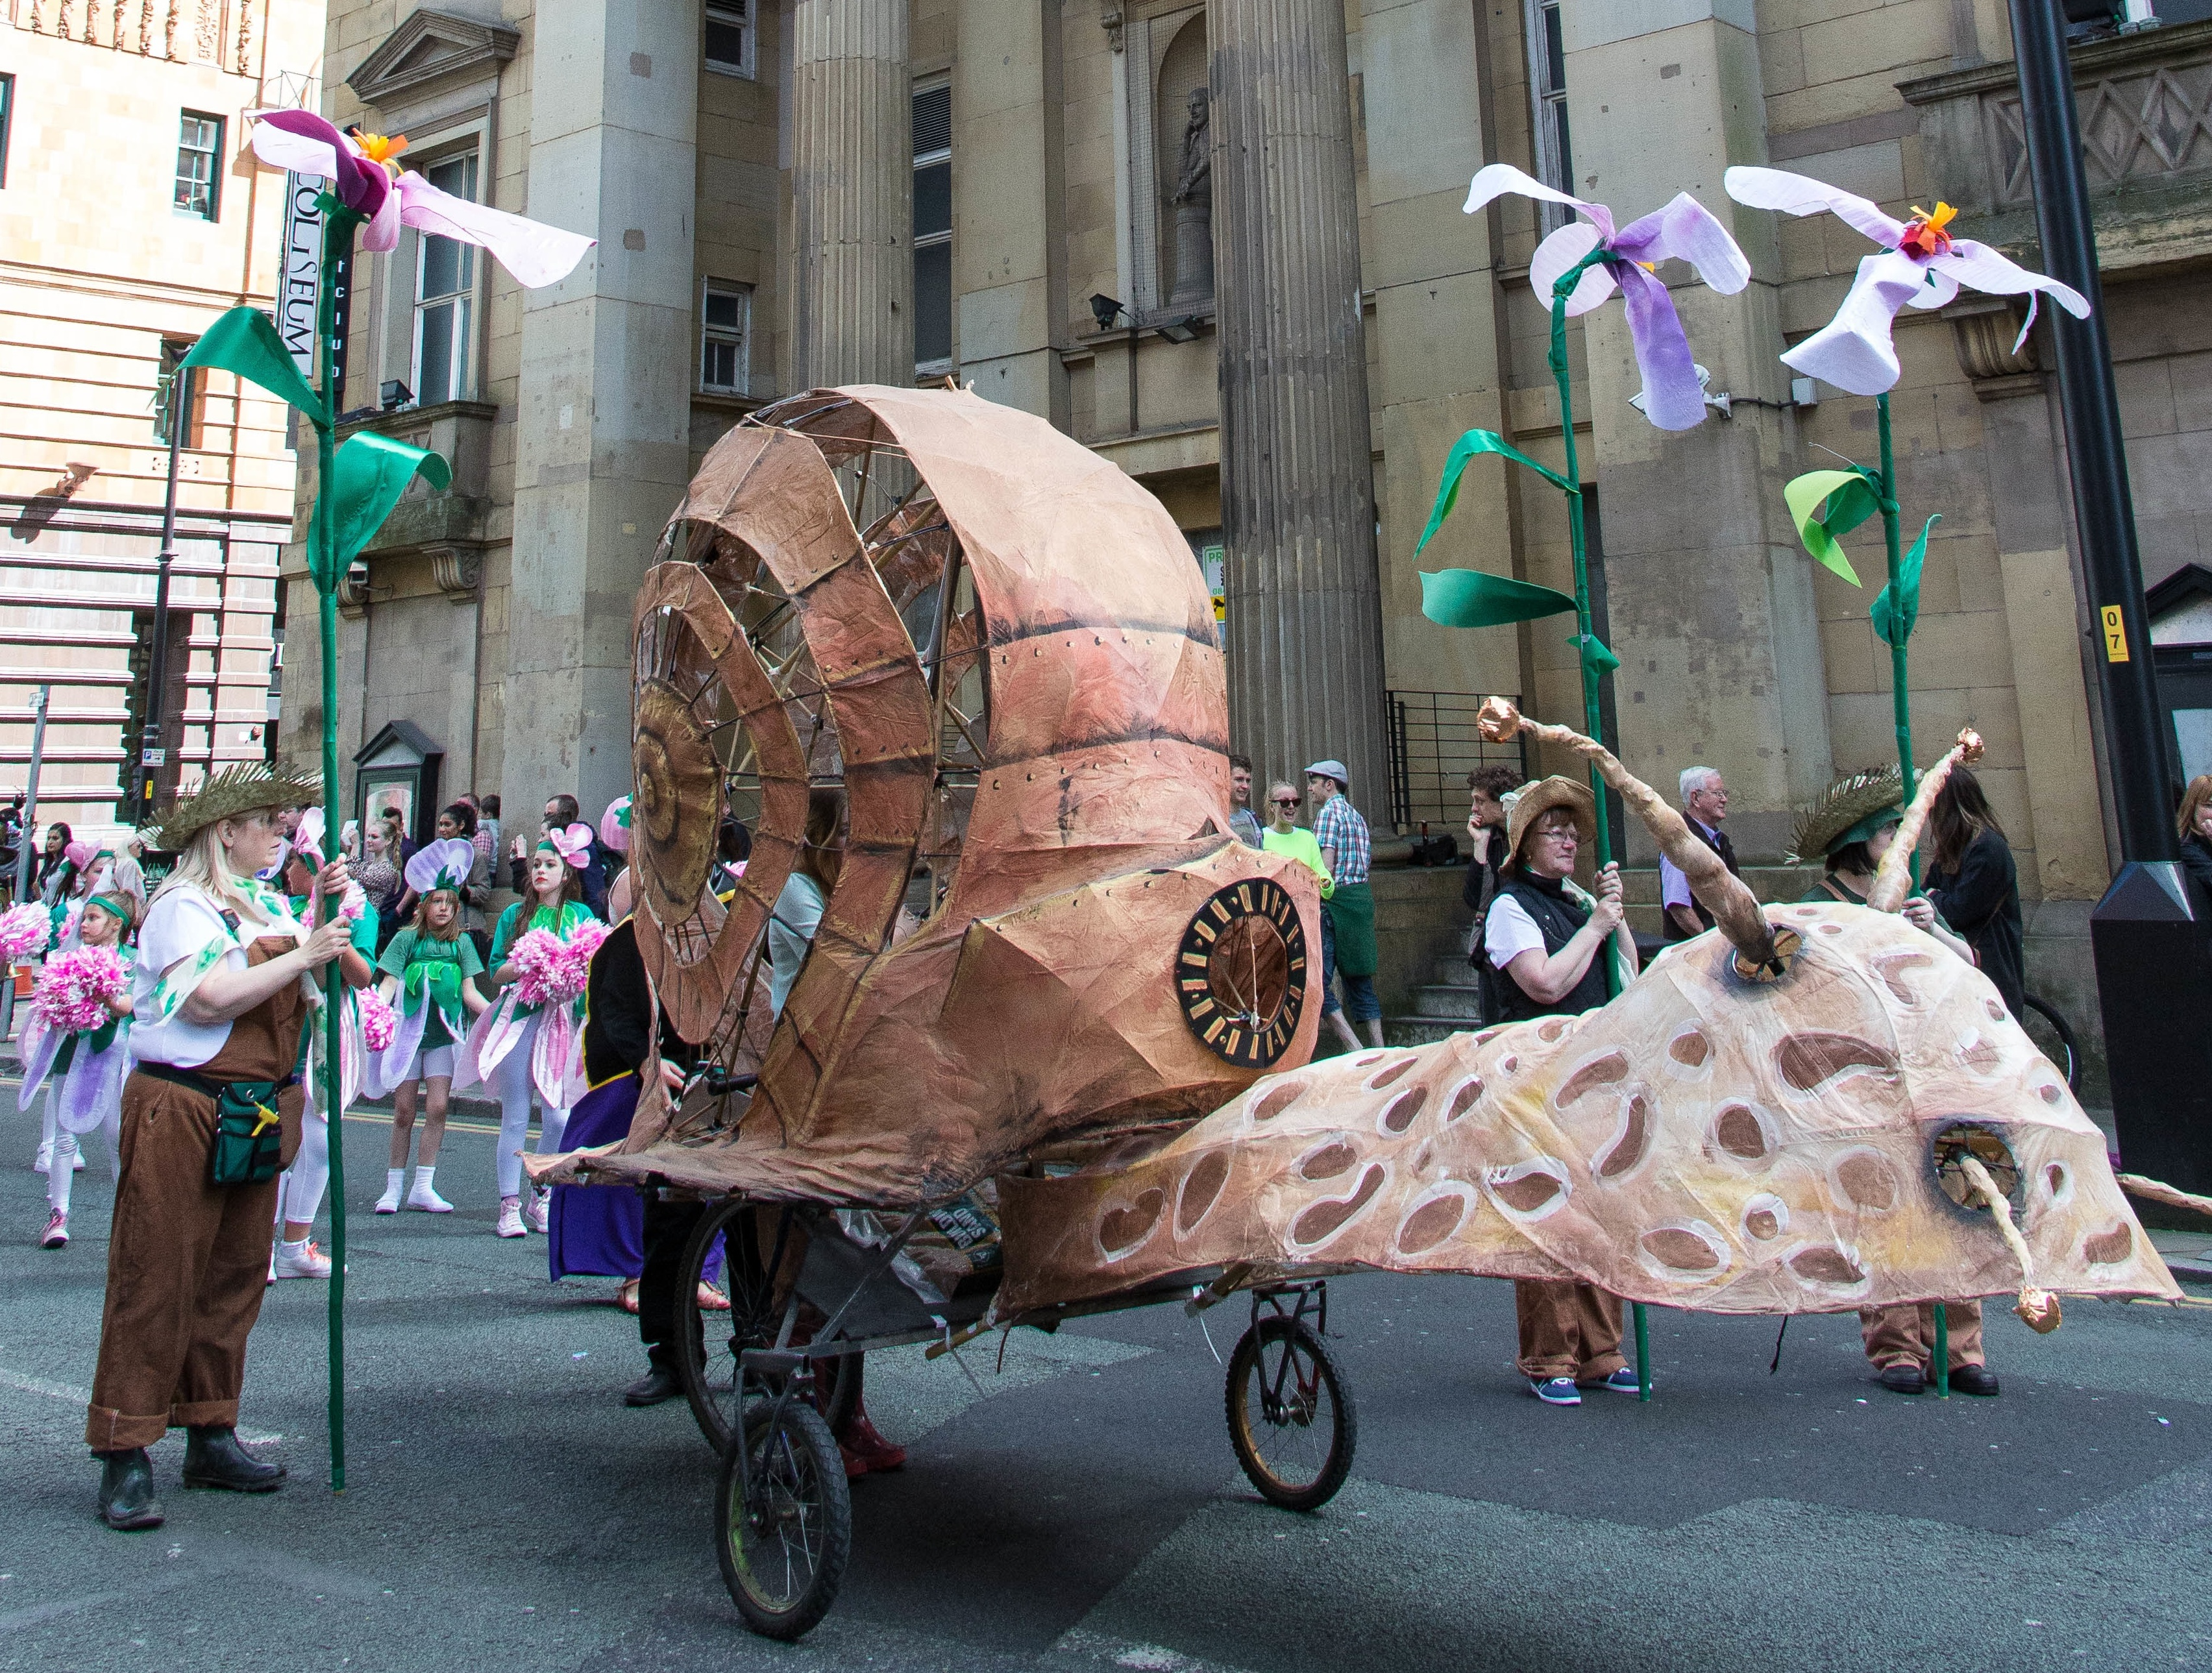 Todmorden Cycle Parade (photo from Manchester Day Parade)